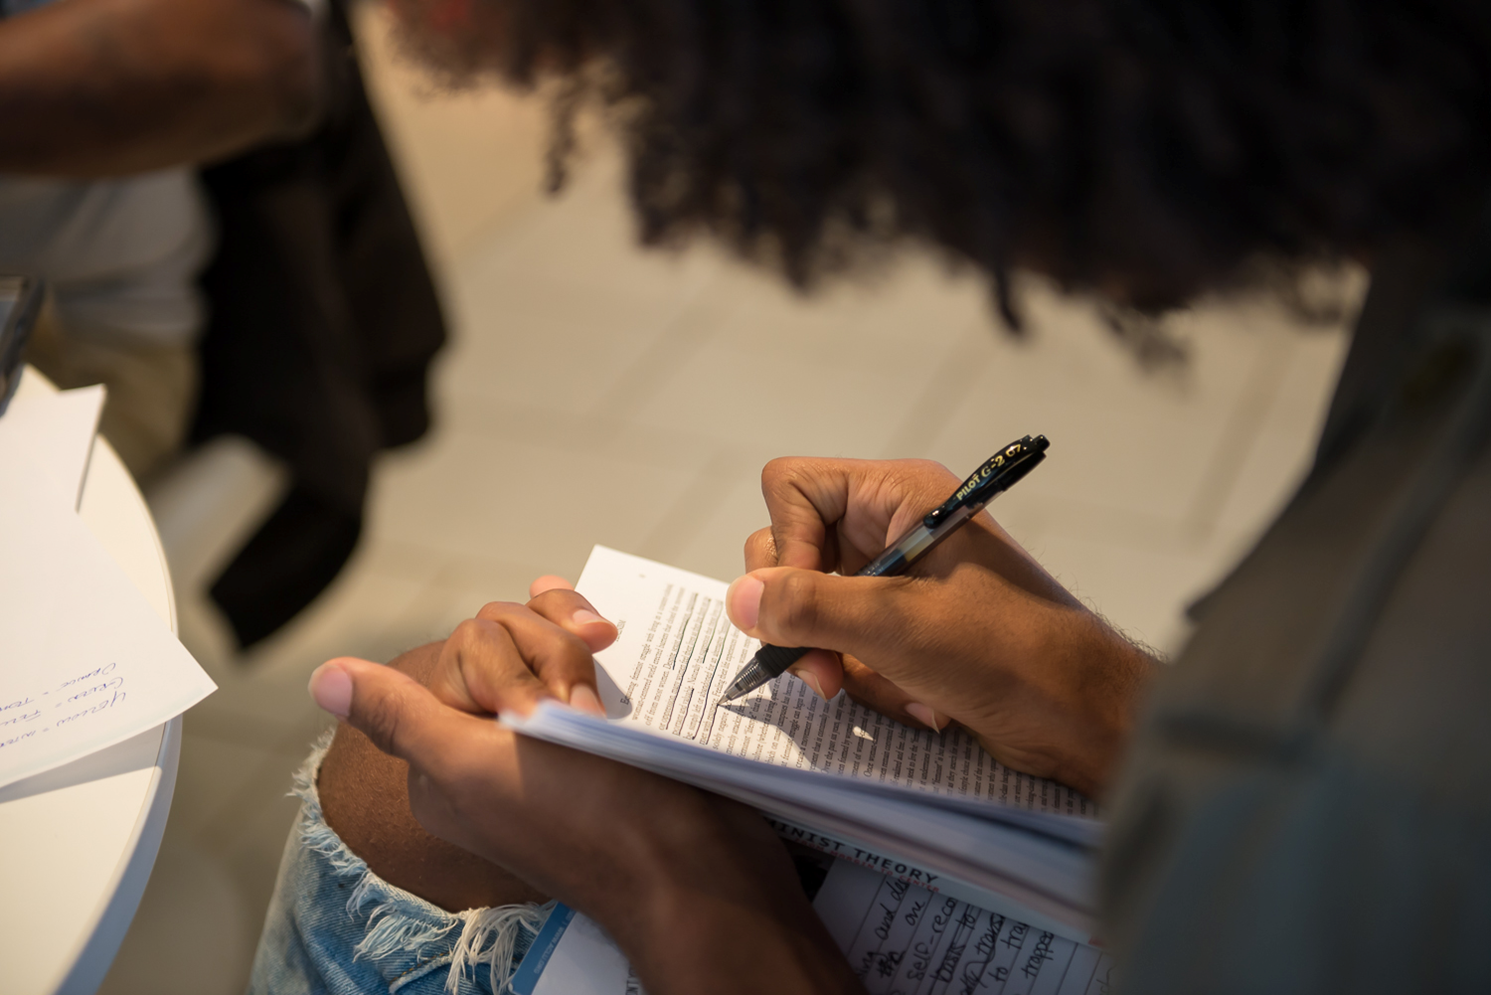 Close up photo of an individual sitting and writing in a notebook.